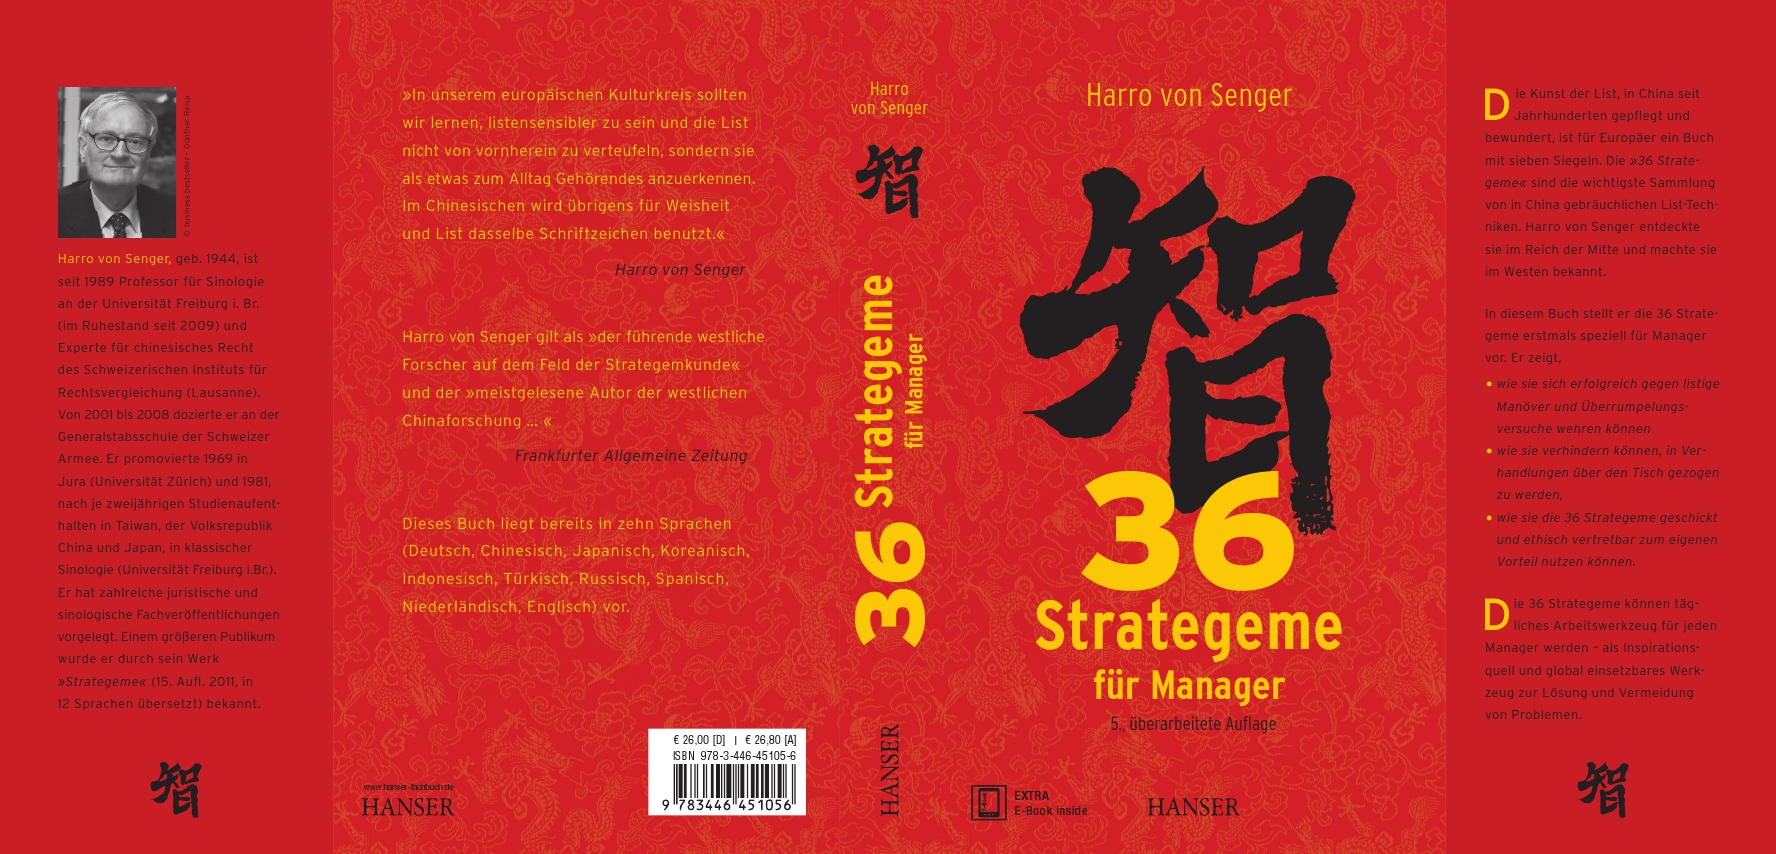 http://www.36strategeme.ch/images/strategeme-manager2016.jpg